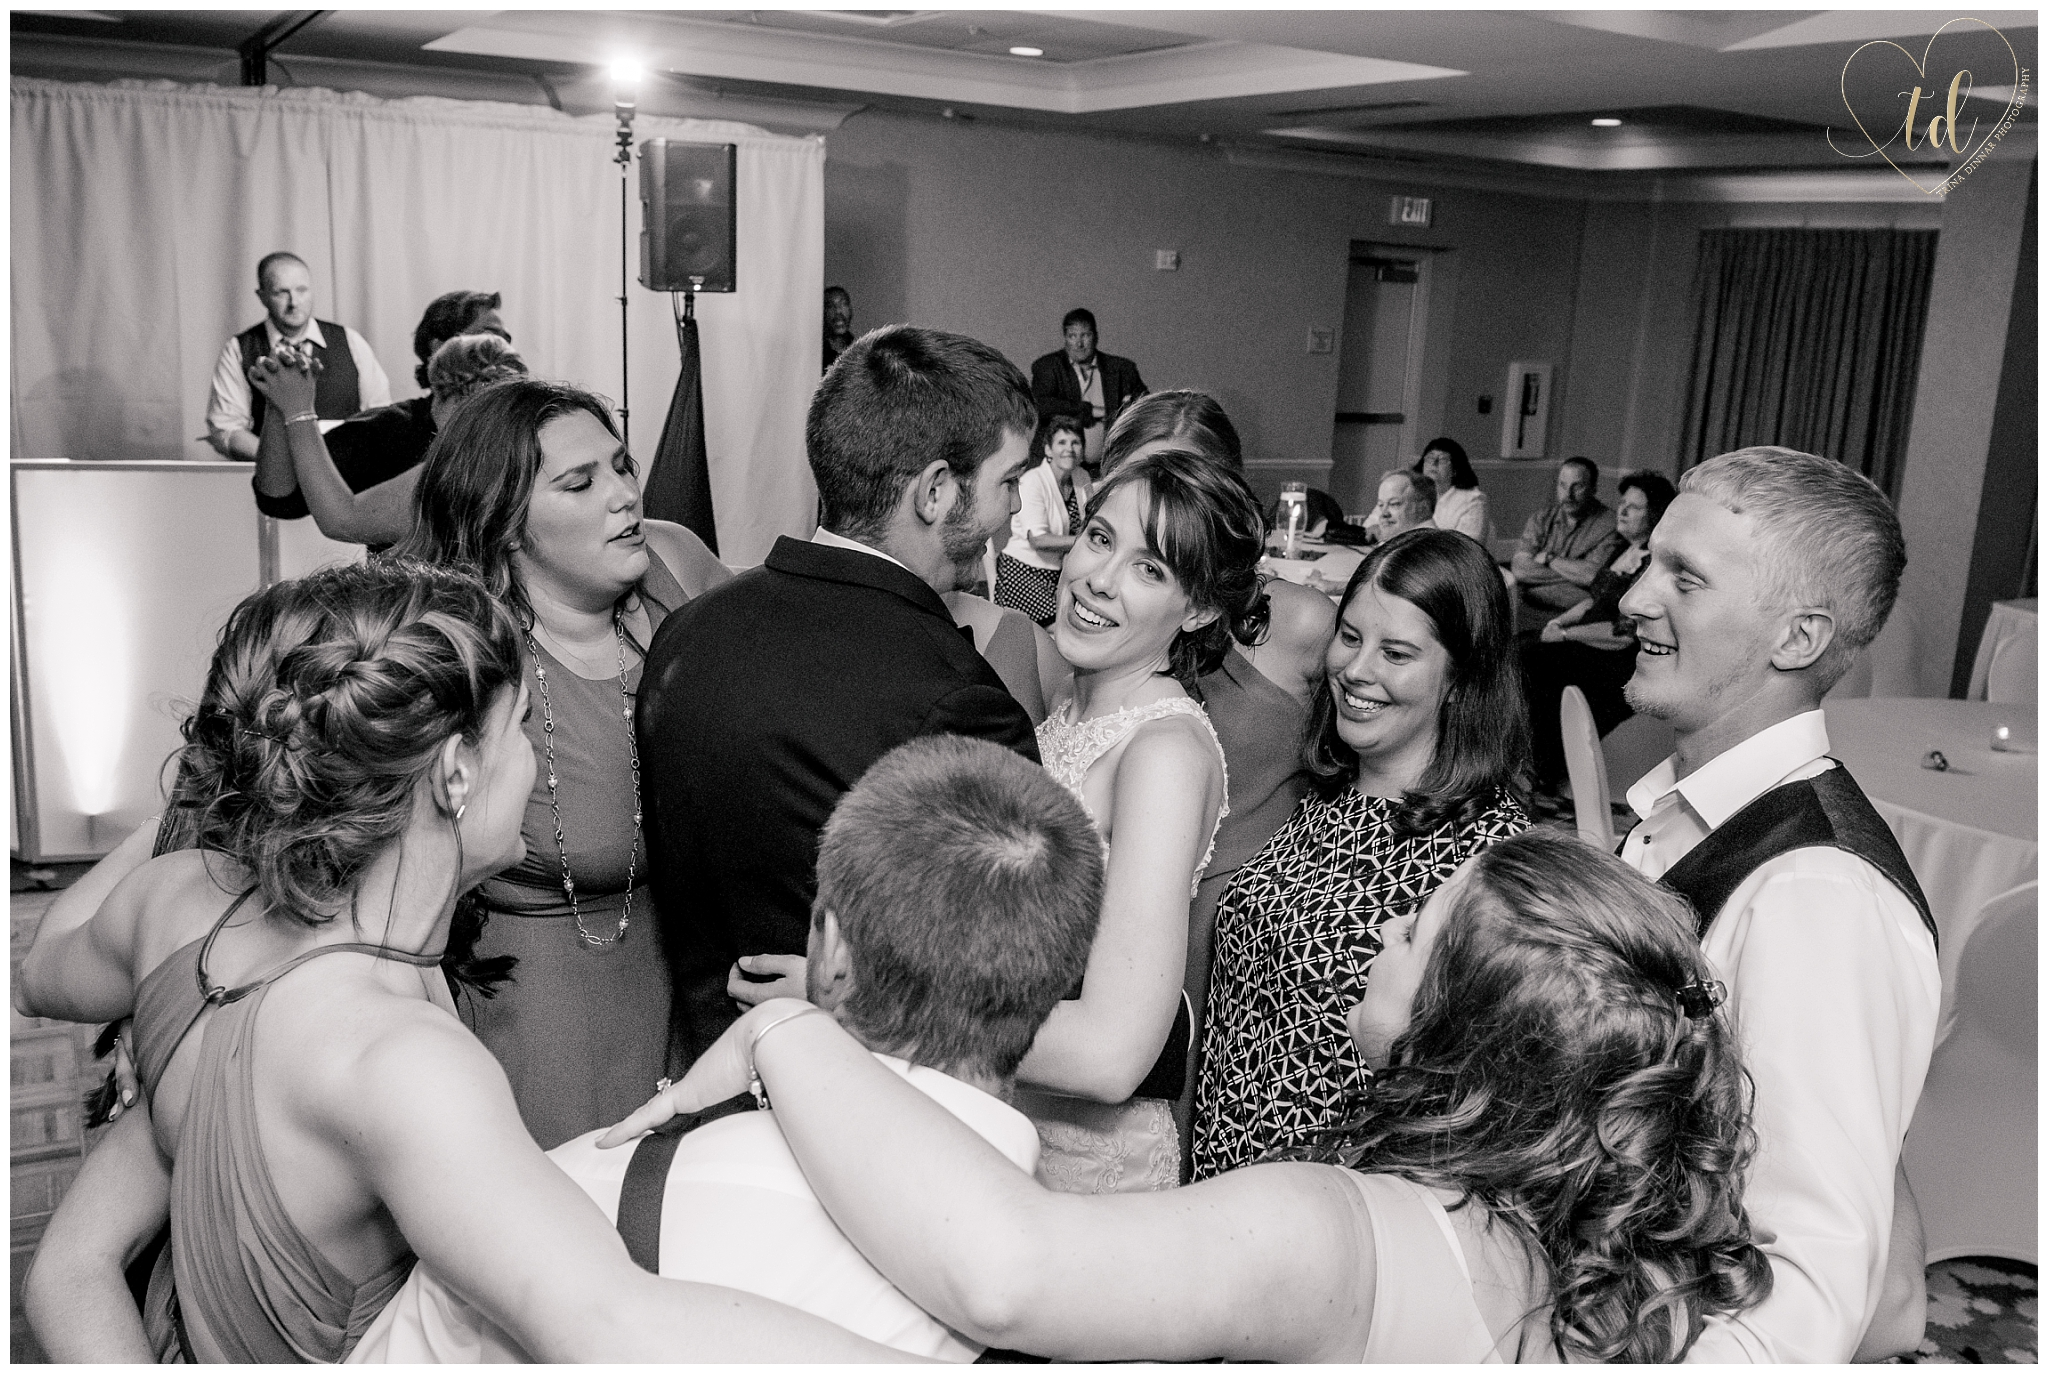 Group dancing at a wedding photographed by photographers in Maine.